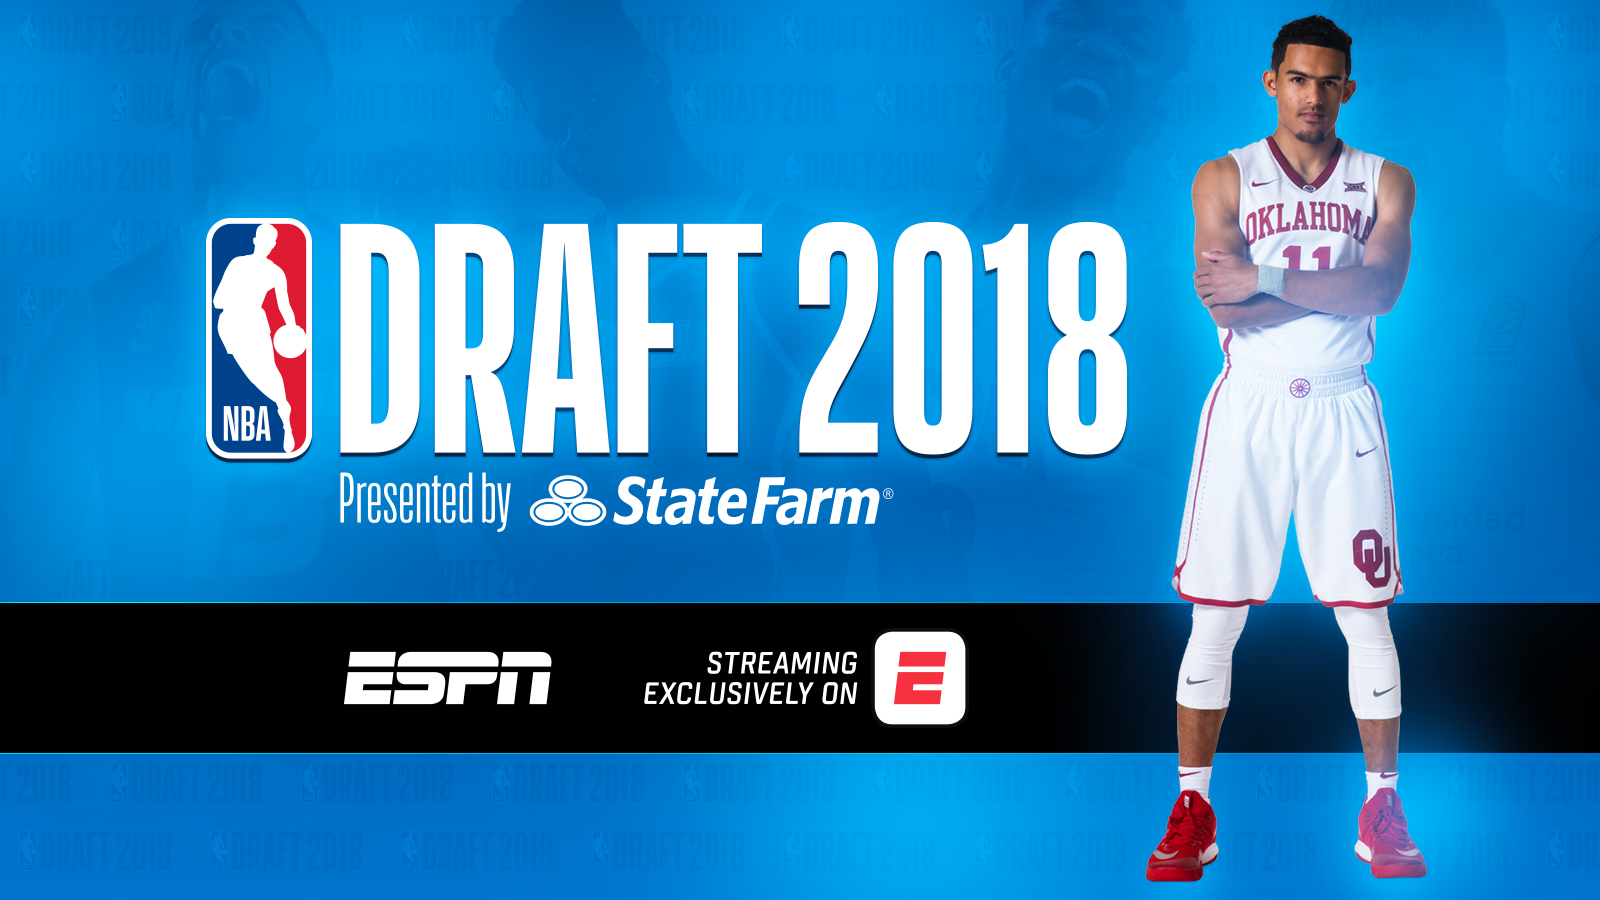 NBA Draft 2018 Live Coverage - ESPN Draftcast